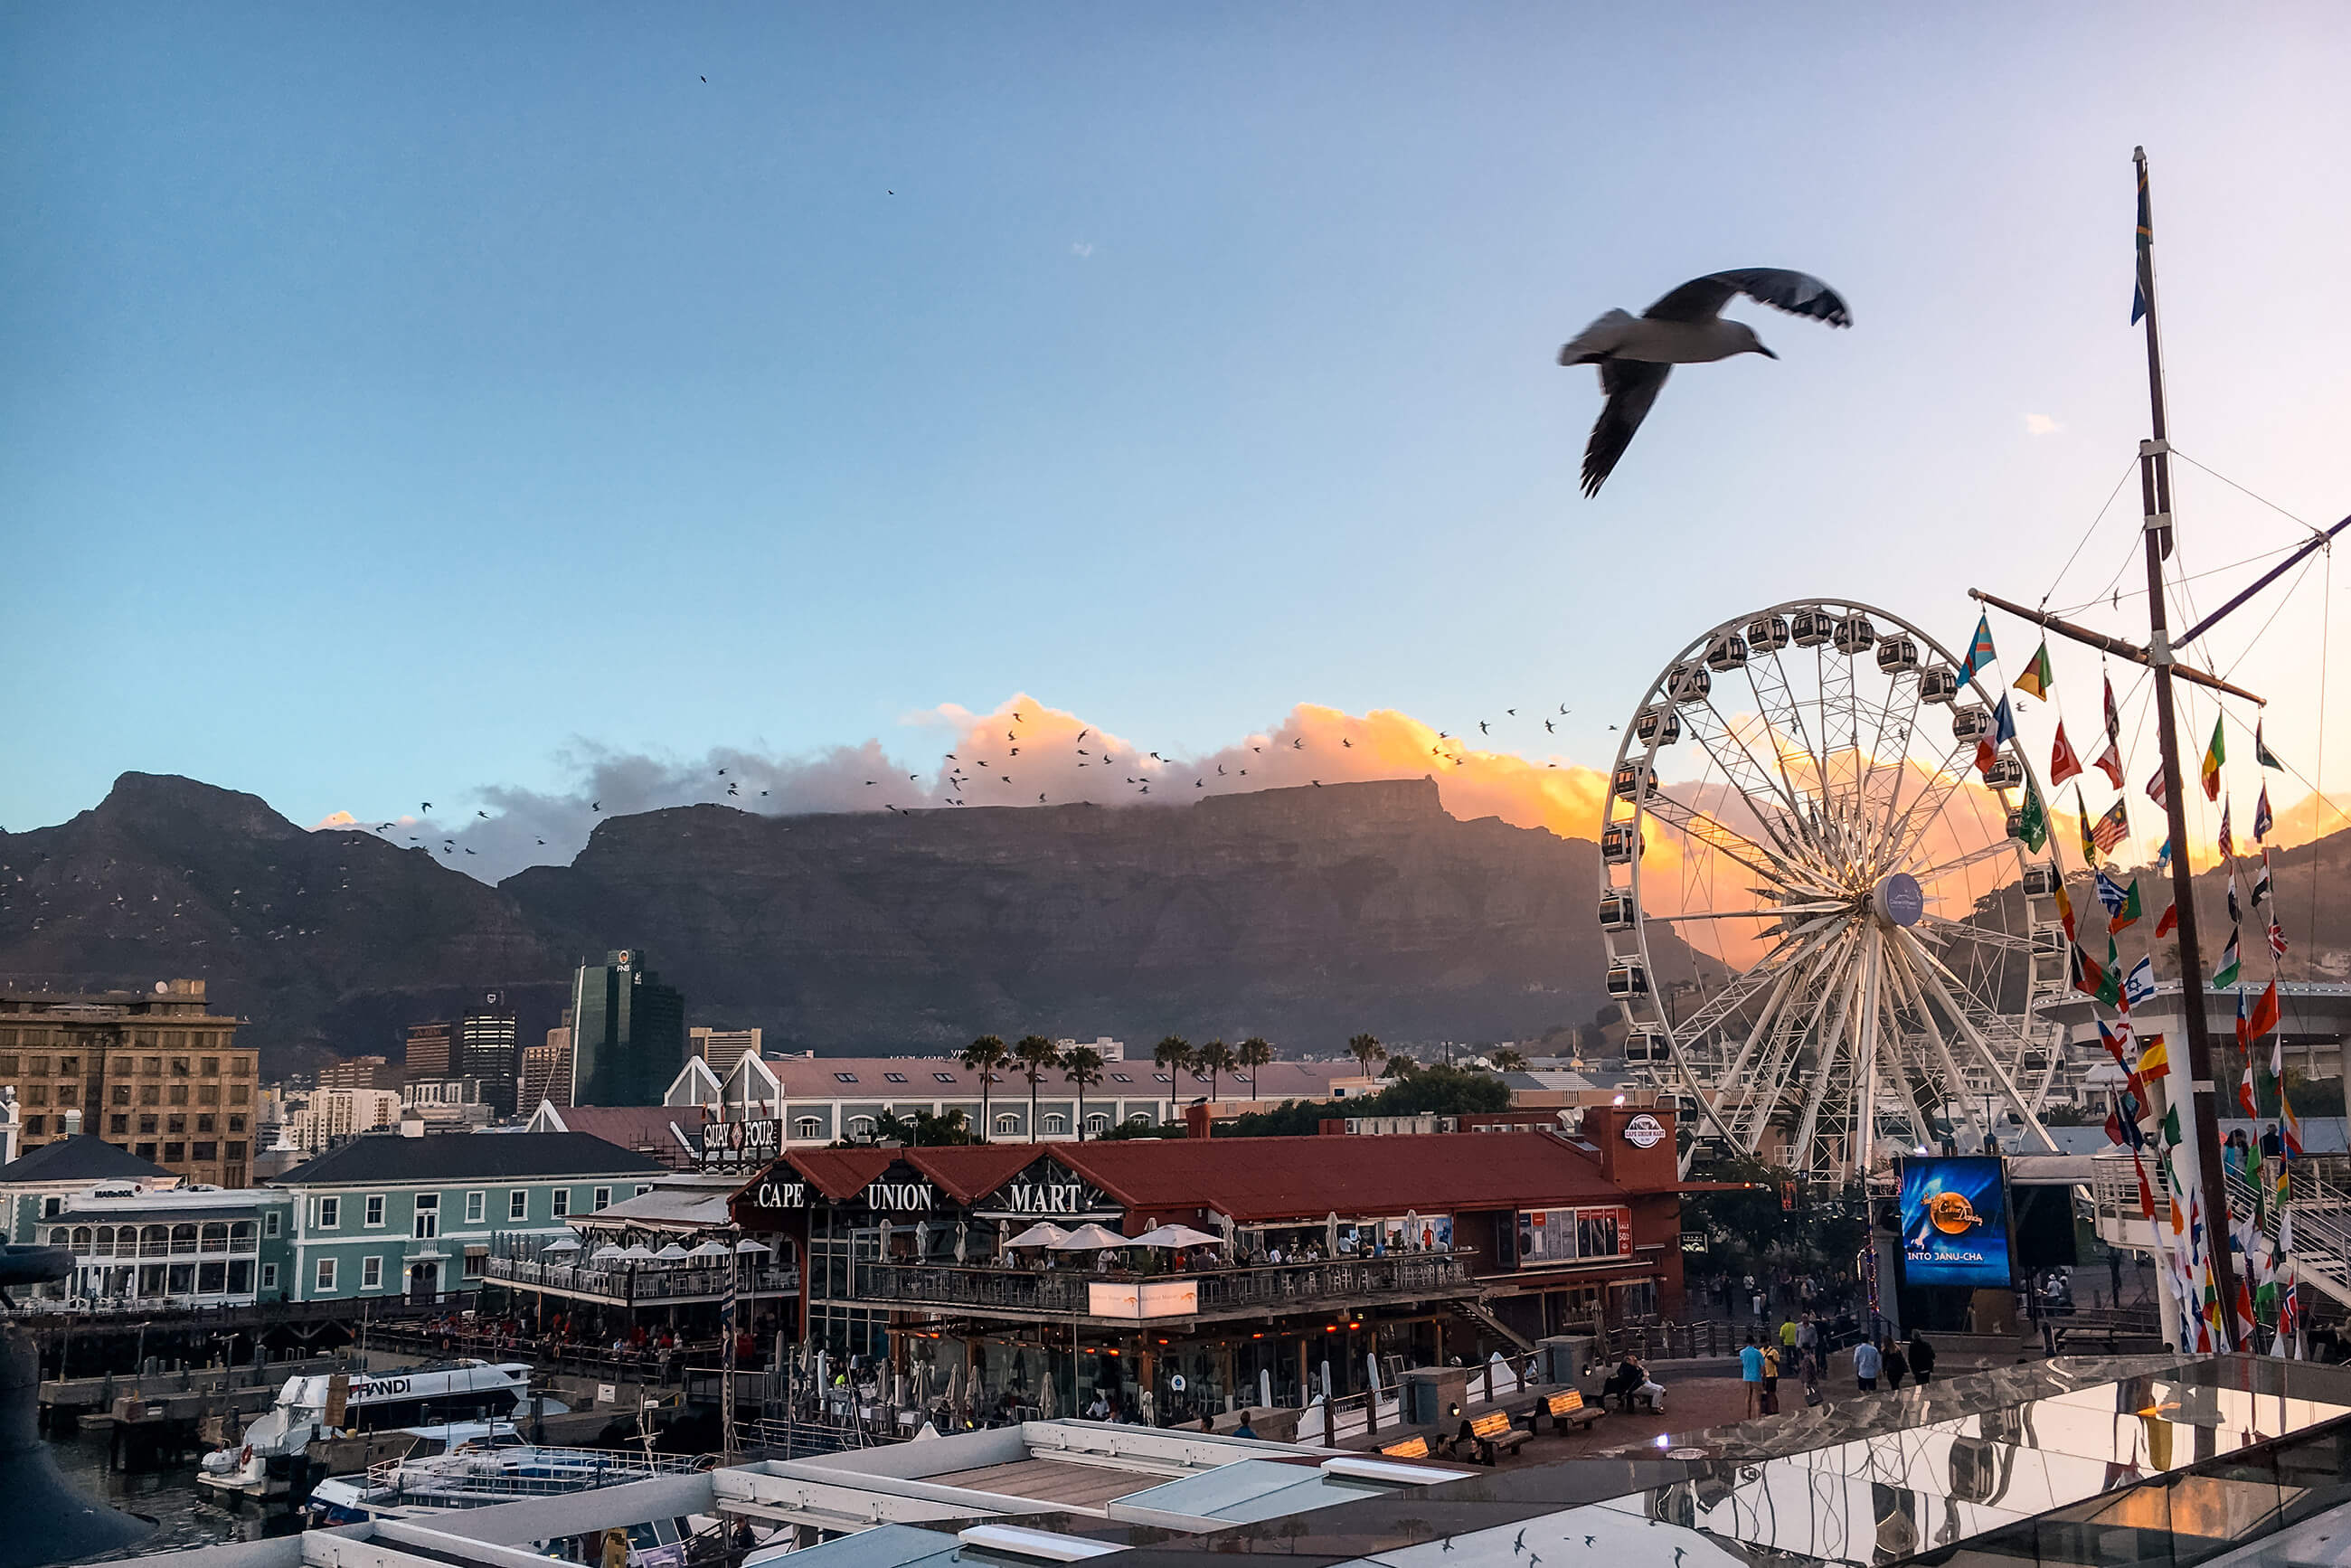 https://bubo.sk/uploads/galleries/16228/jar_capetown_waterfront_xdck9926-30.jpg